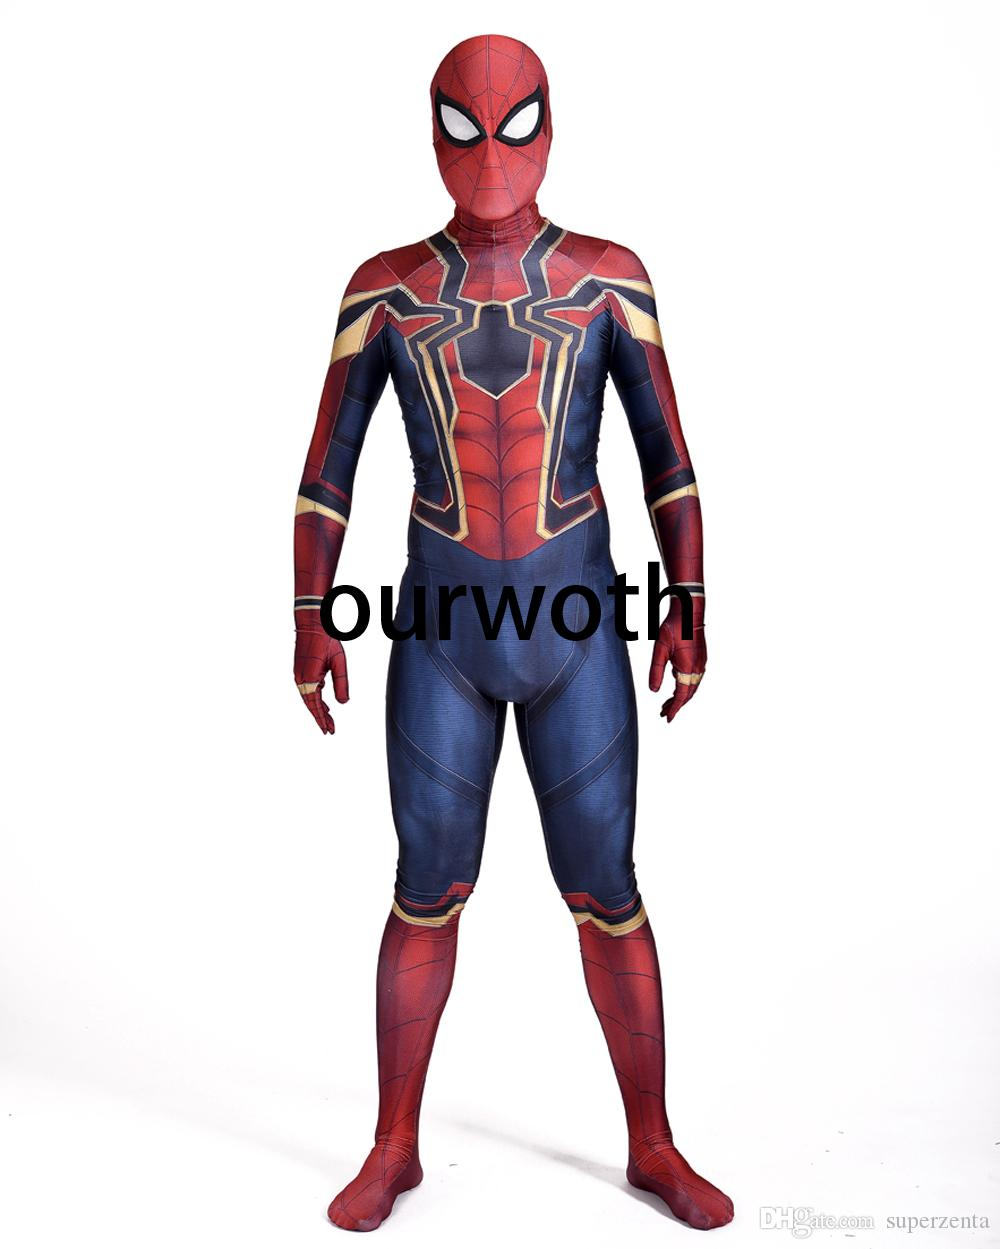 Homecoming Iron Spiderman Costume 3d Print Cosplay Comic Iron Spider Man Costume Custom Made Available 5 People Halloween Costumes Family Halloween Themes ...  sc 1 st  DHgate.com & Homecoming Iron Spiderman Costume 3d Print Cosplay Comic Iron Spider ...